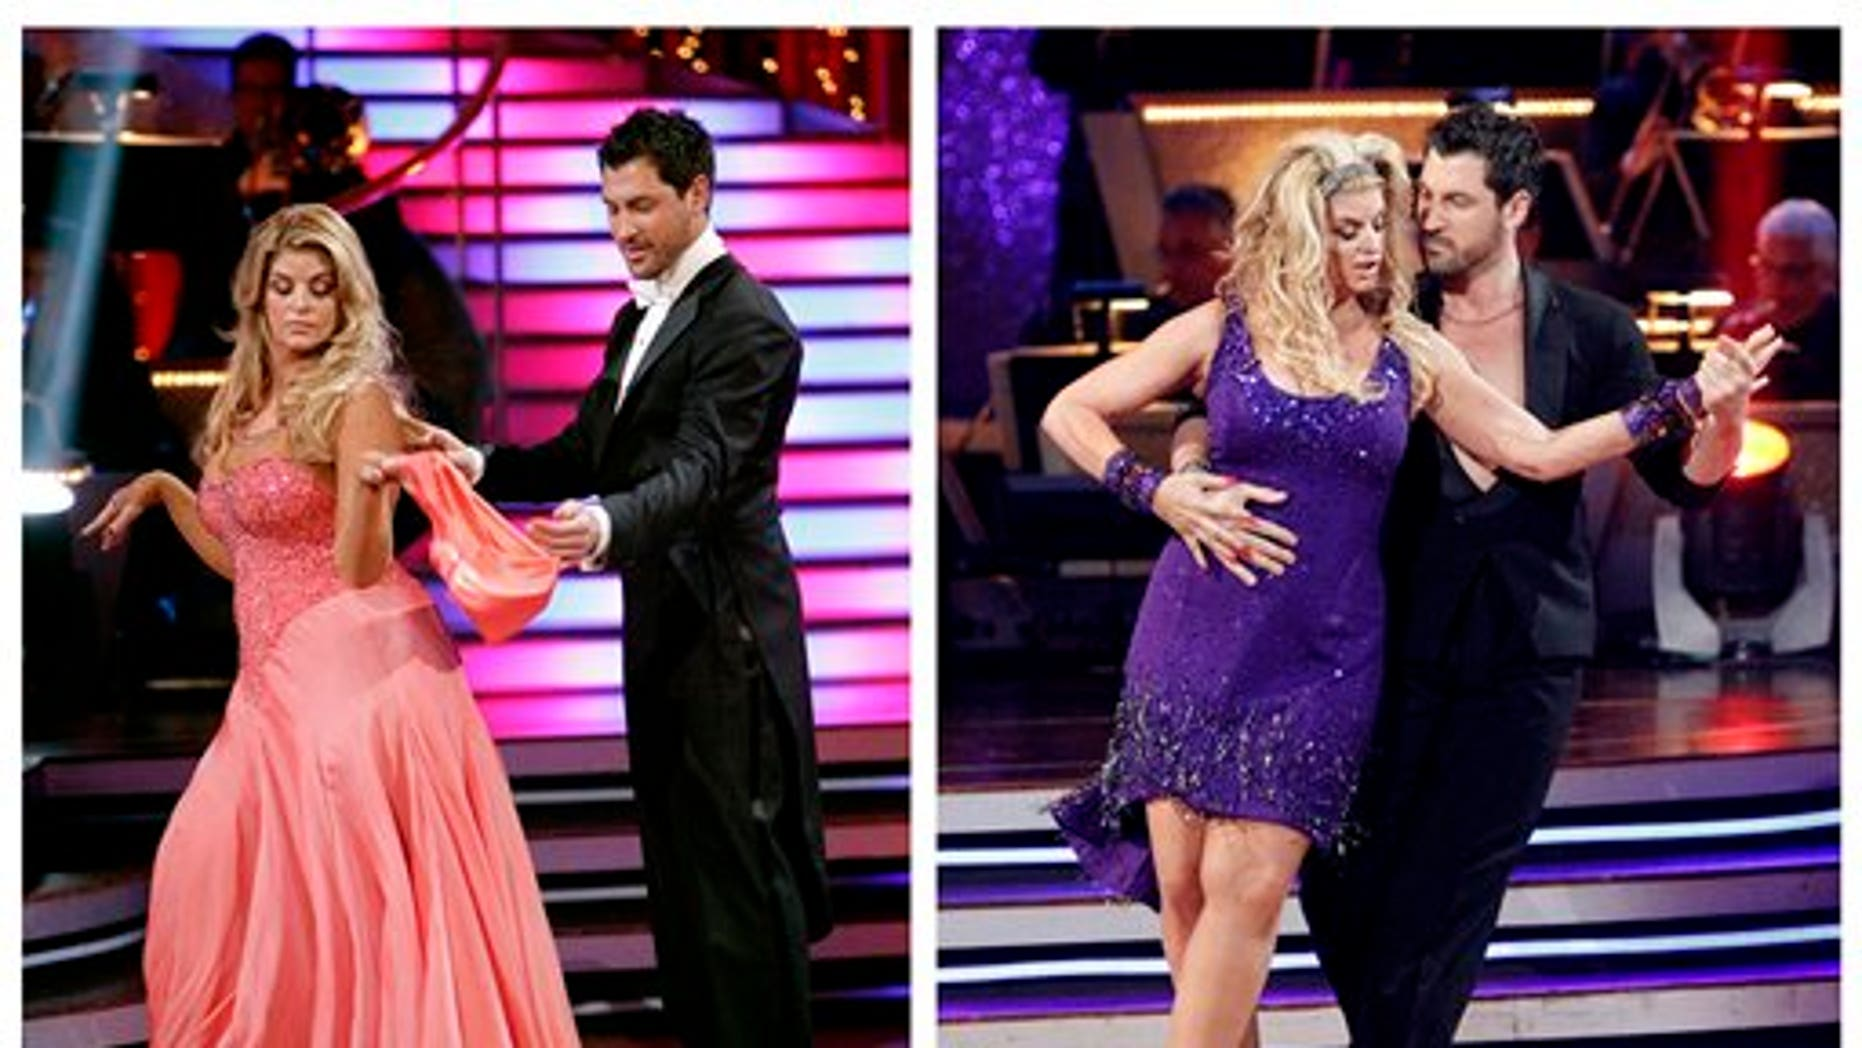 """In this photo combination of file images released by ABC, actress Kirstie Alley and her partner Maksim Chmerkovskiy perform on the celebrity dance competition series, """"Dancing with the Stars,"""" in Los Angeles, on March 28, 2011, at left, and May 16, 2011, at right."""